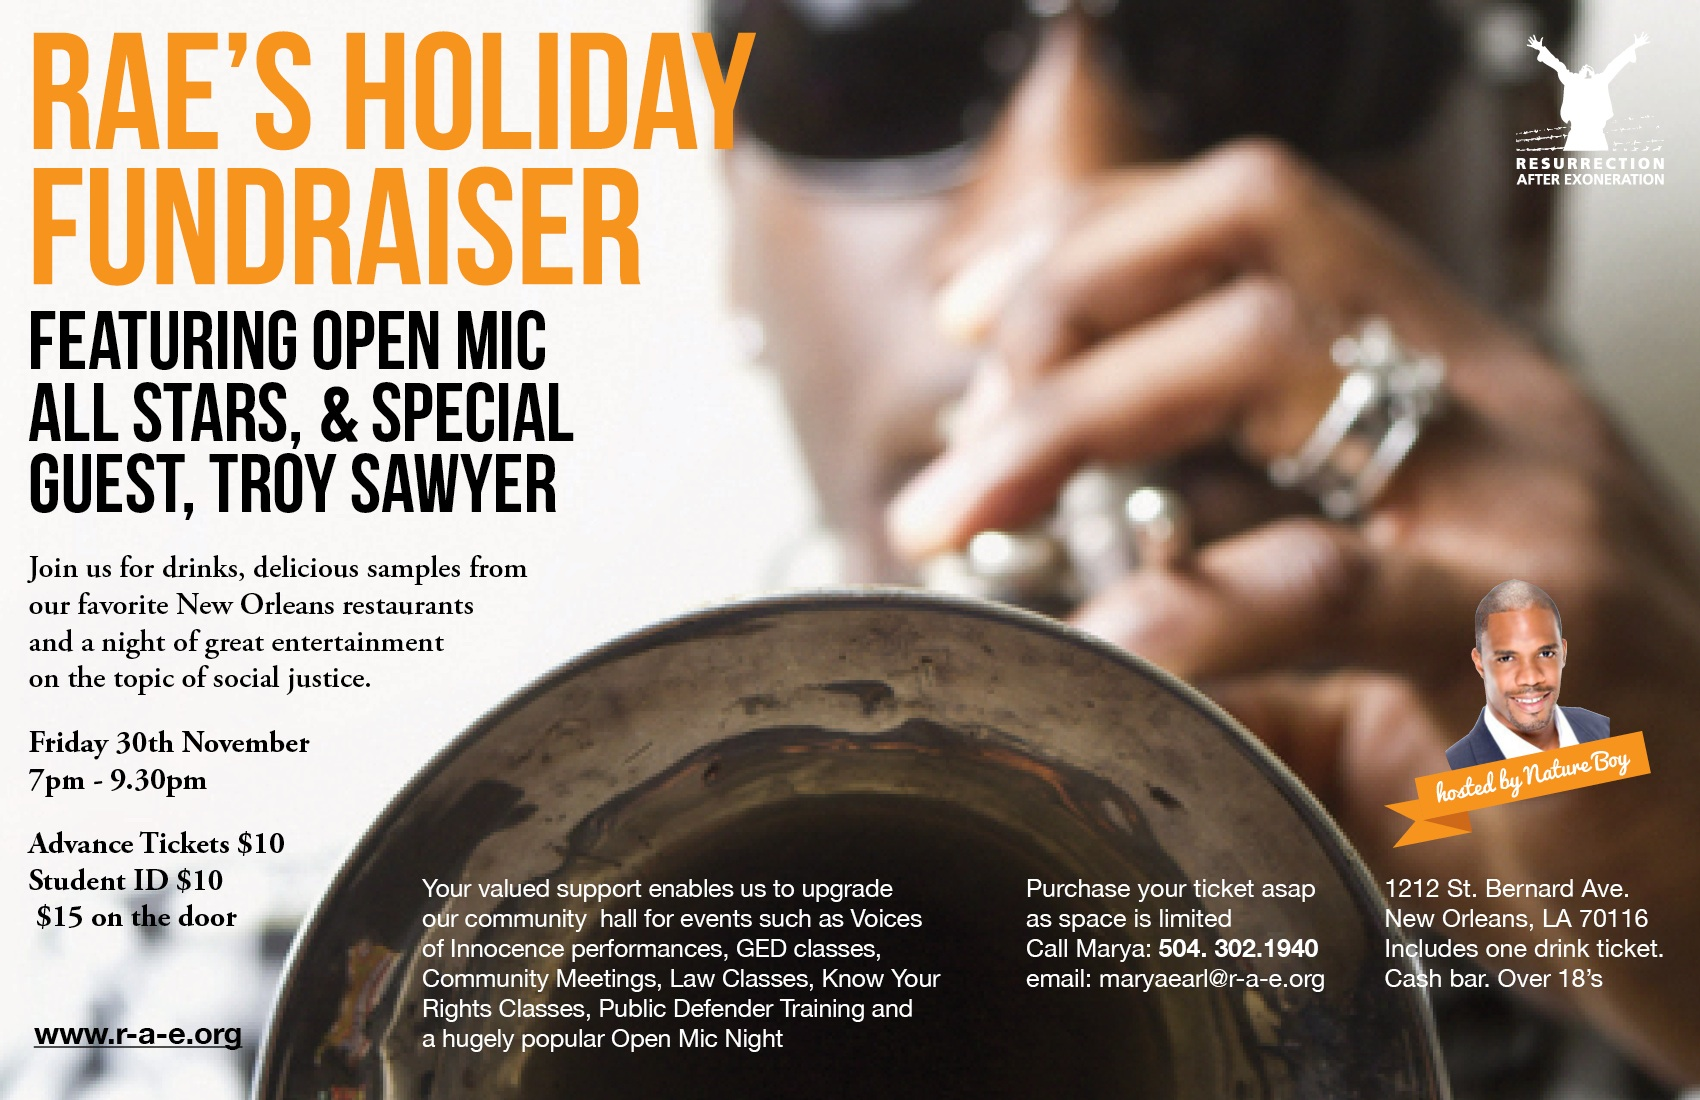 Holiday Fundraiser Flyer 2